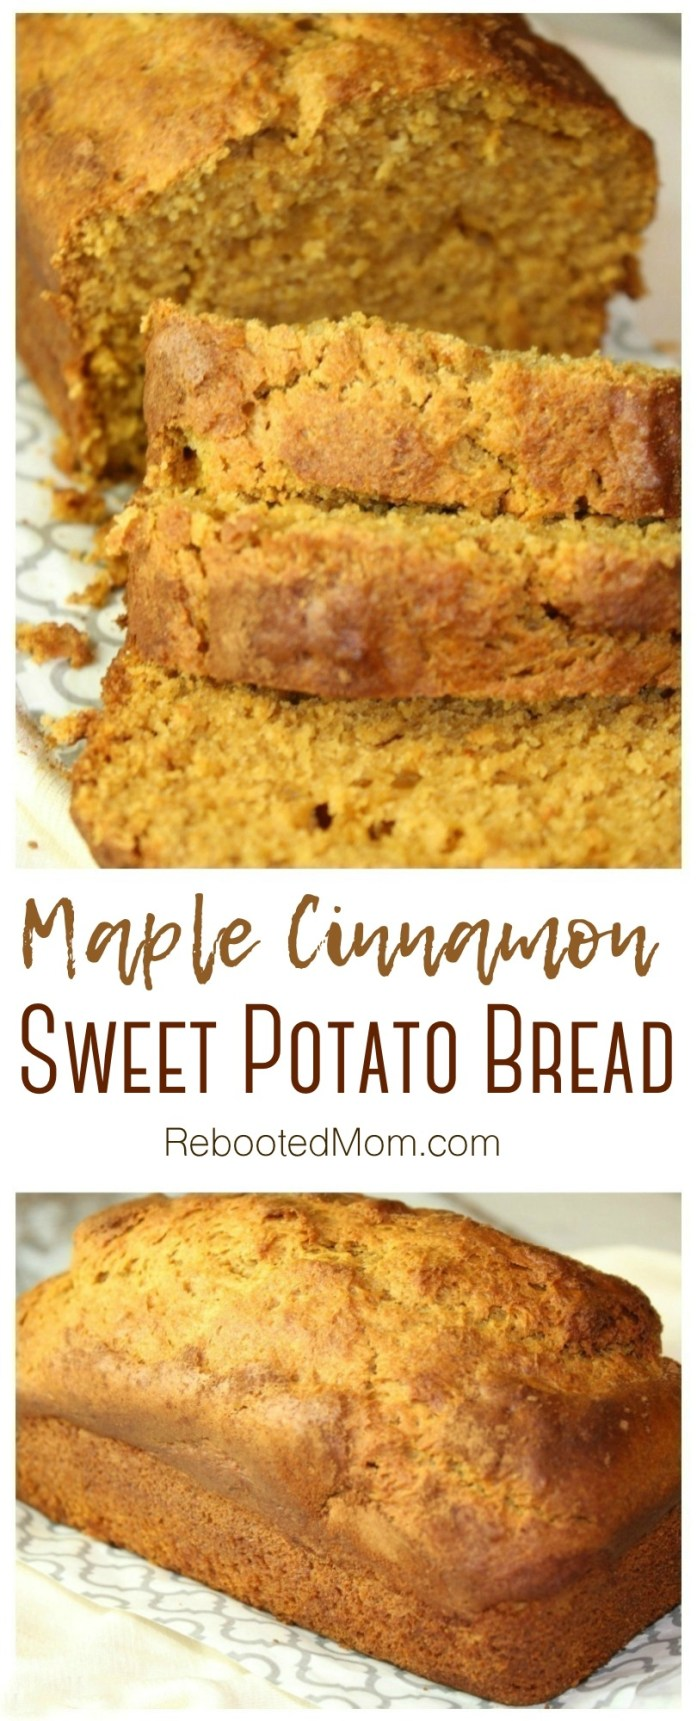 Our maple sweet potato bread blurs the line between breakfast and dessert & combines subtle spices of maple syrup, and sweet potatoes into one yummy loaf.